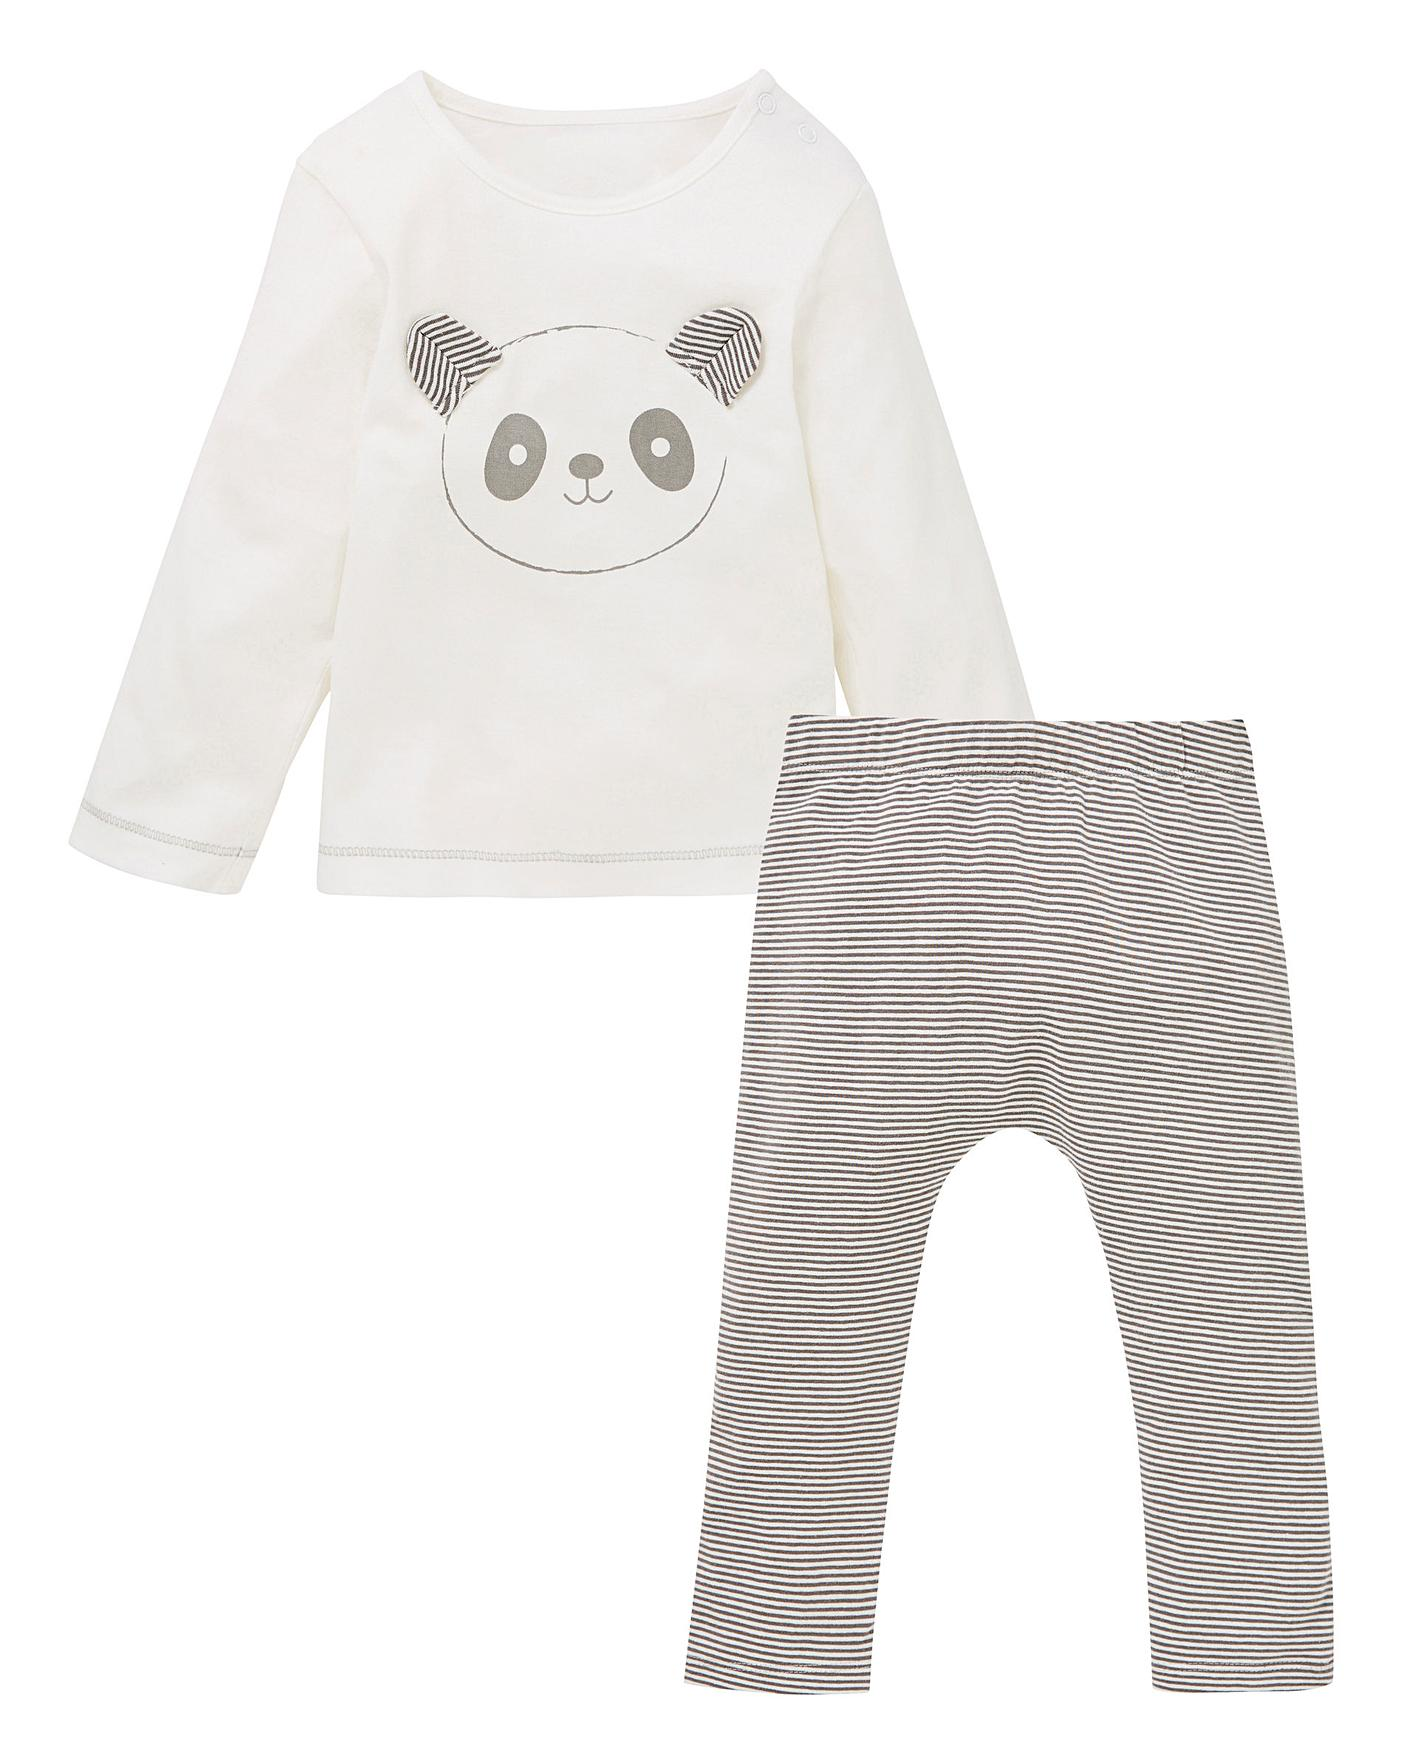 c972f68a20e2 KD Baby Uni Panda Tee and Legging Set